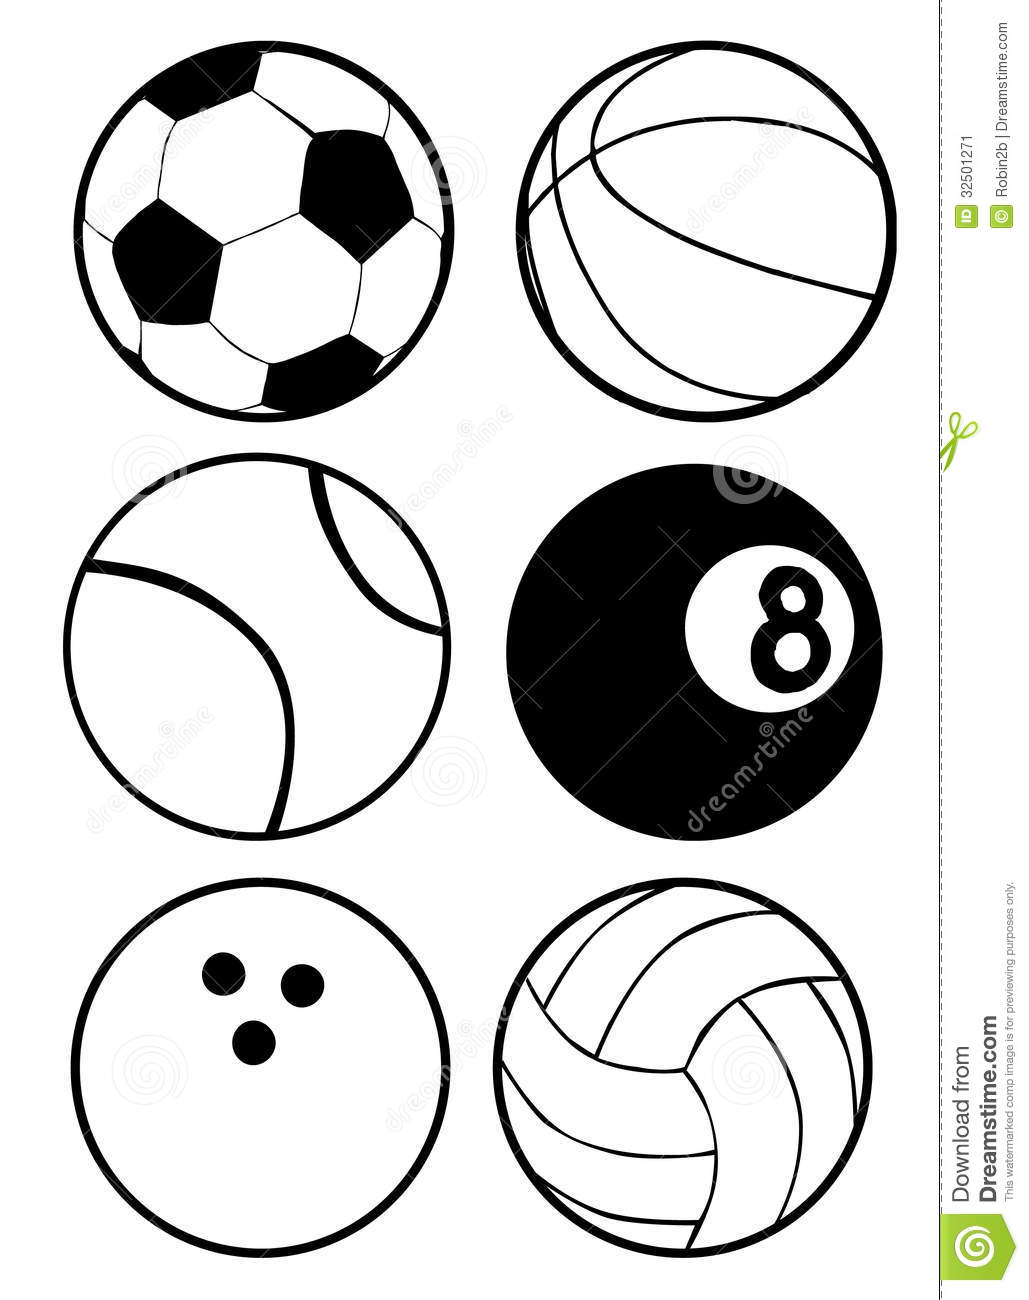 Black And White Sports Balls Stock Vector